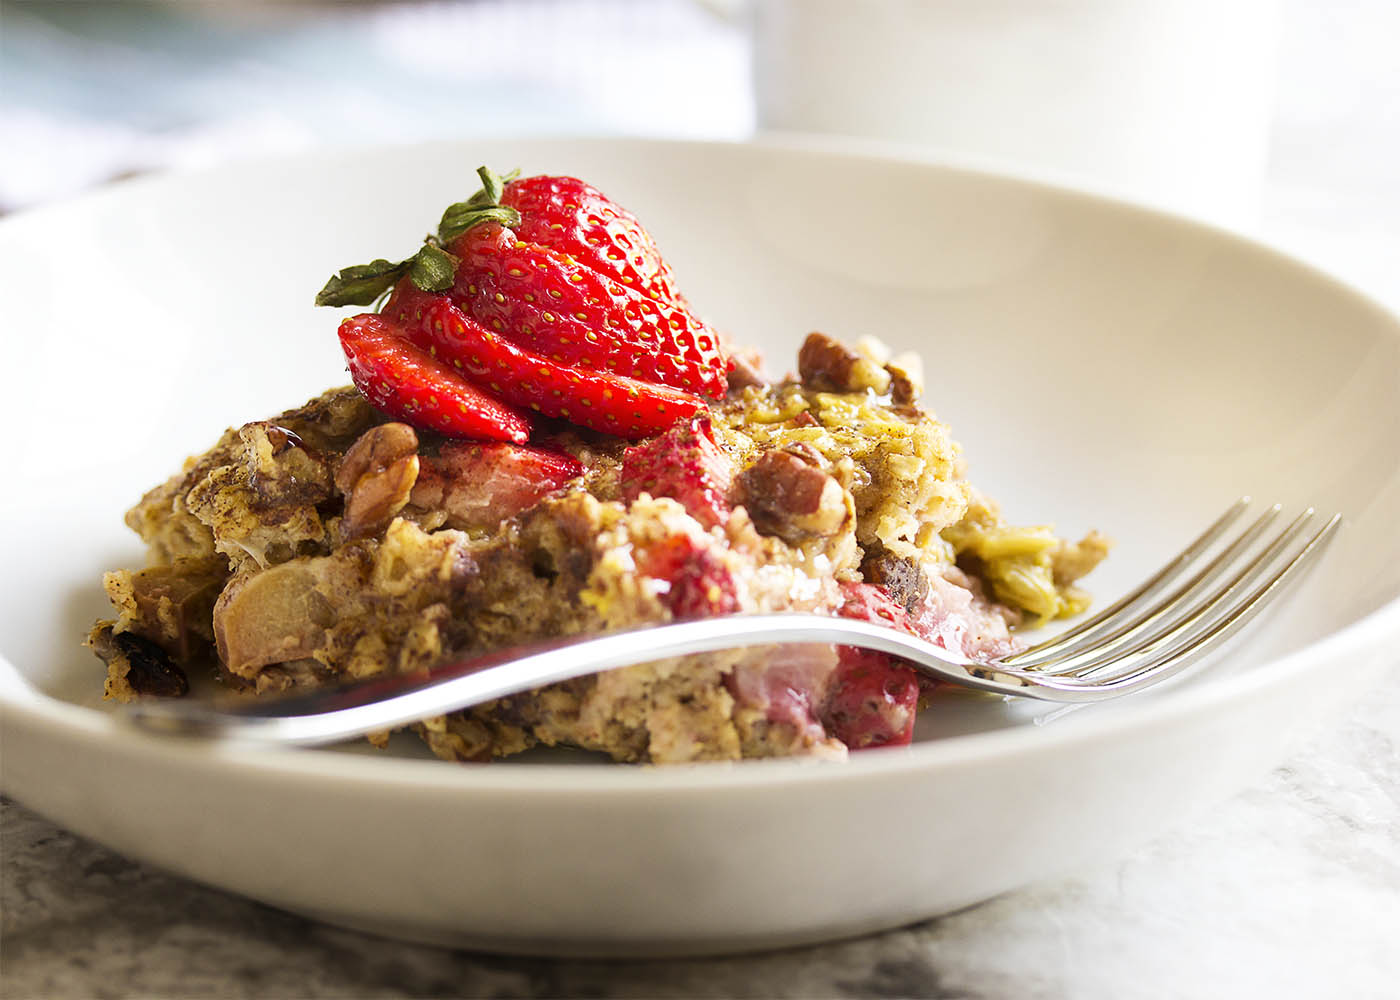 Strawberry Rhubarb Baked Oatmeal - This baked oatmeal smells like a cross between strawberry rhubarb pie and pancakes as it bakes. And it tastes as wonderful as it smells! Pour a little cream over the top, spoon some yogurt next to it, or eat it as is. It's all good. | justalittlebitofbacon.com